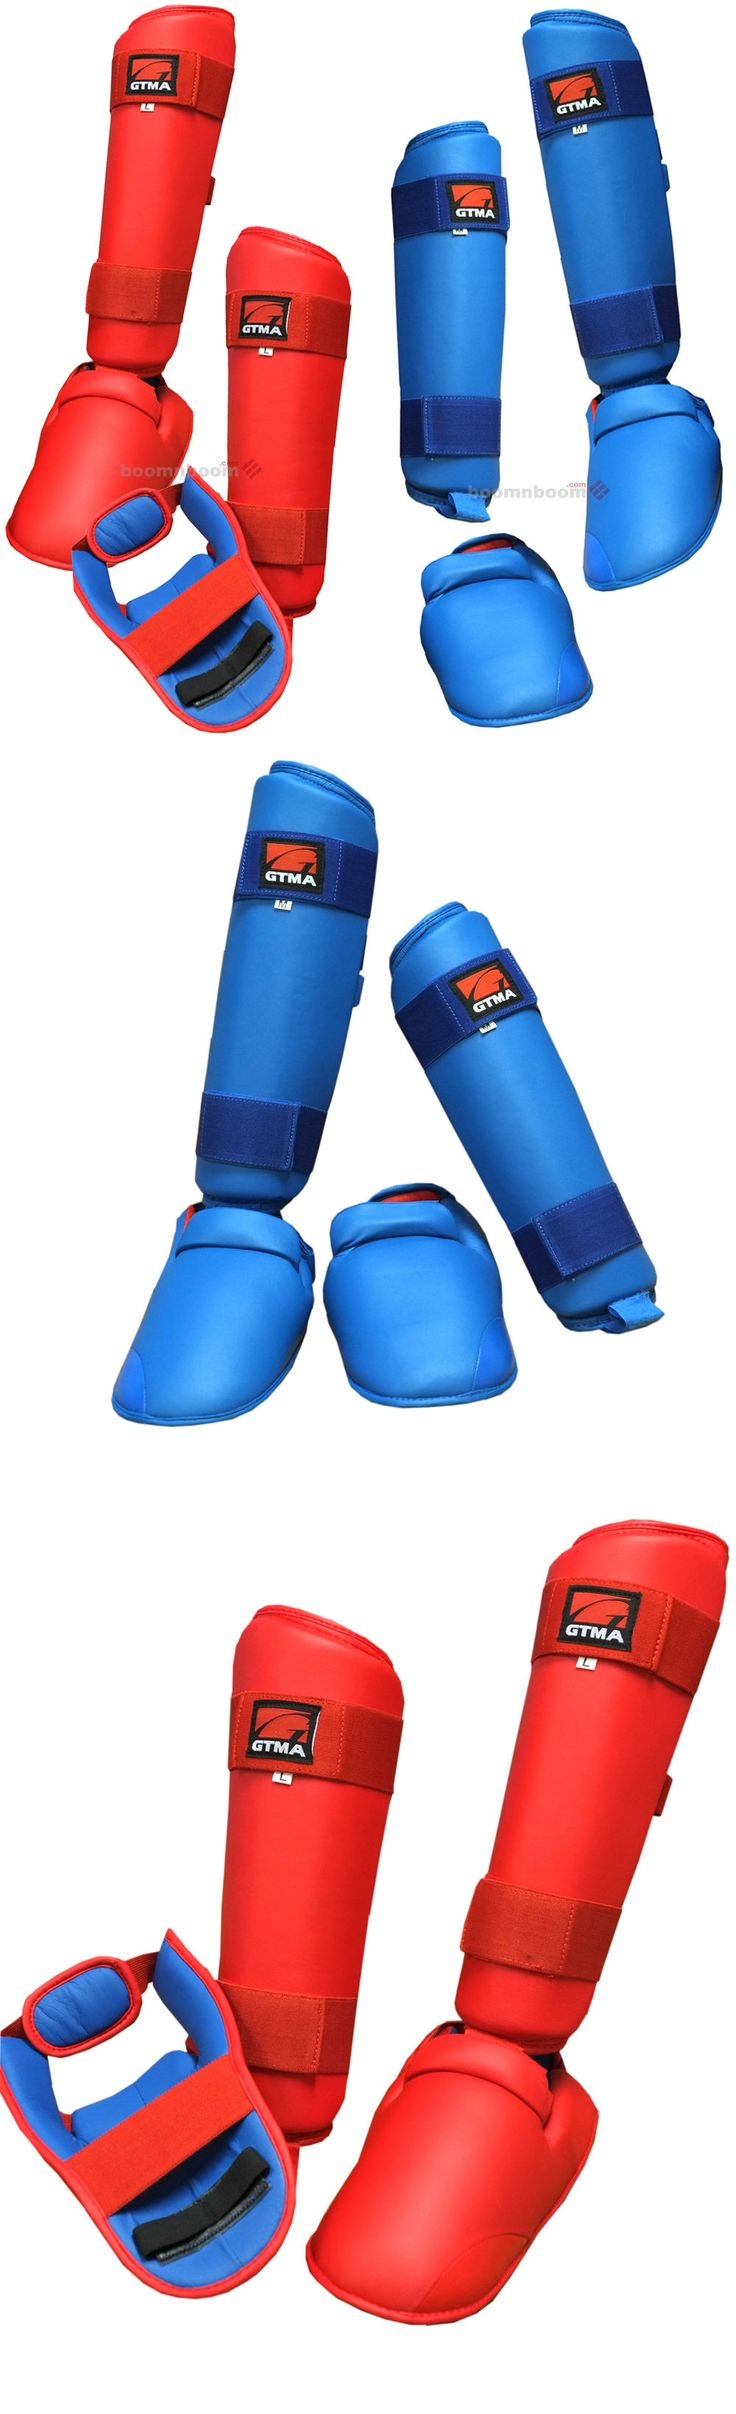 Shin Guards 179782: New Karate,Mma,Muay Thai Shin Instep Protector Leg Foot Guard Sparring Gear -> BUY IT NOW ONLY: $35.99 on eBay!